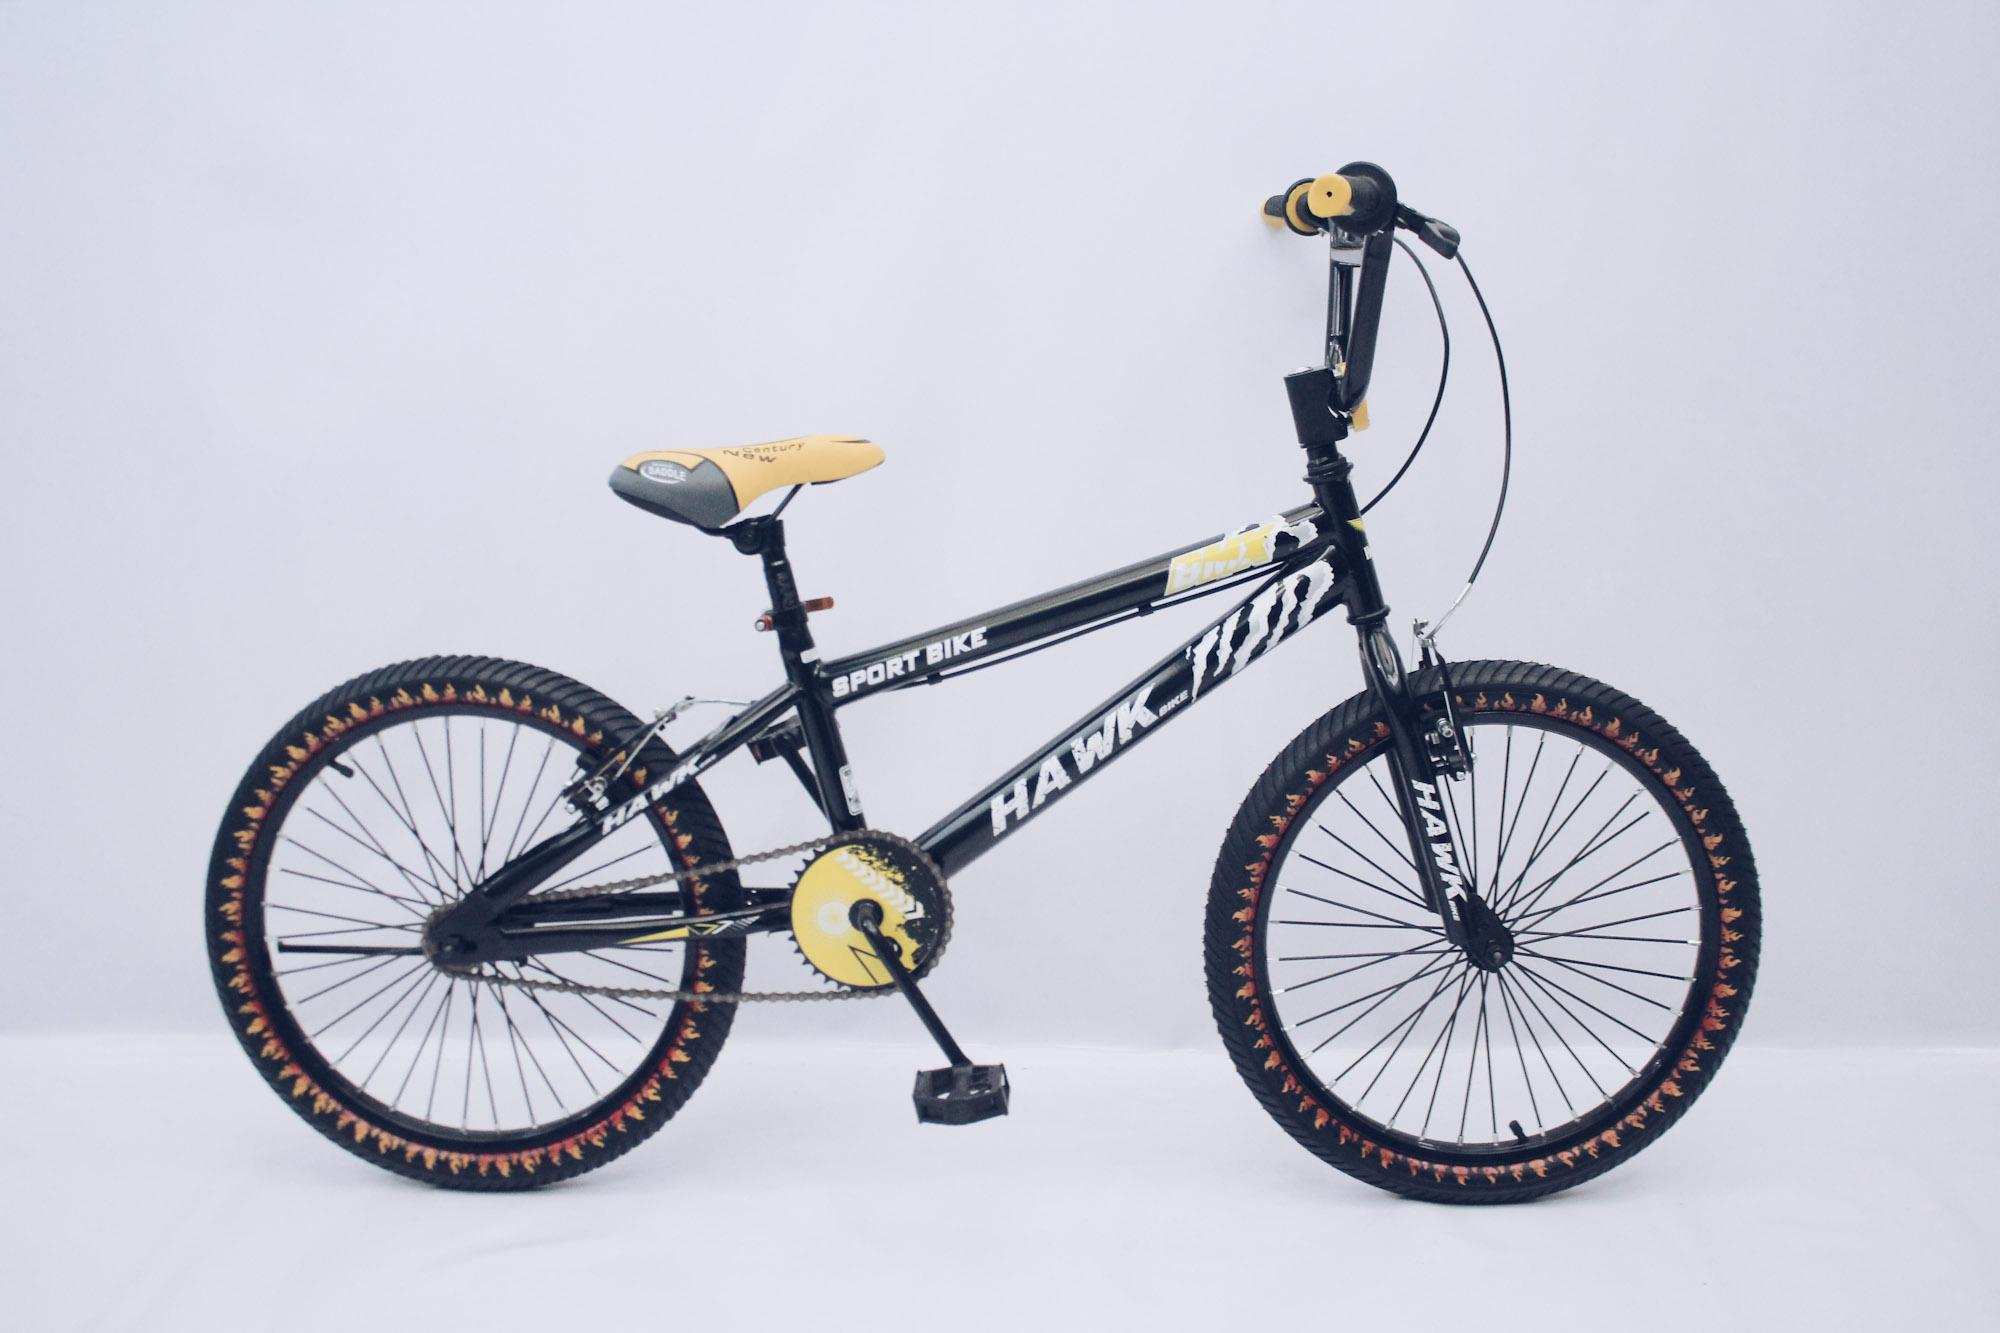 2d4674e9757 BMX for sale - BMX Bikes Online Deals & Prices in Philippines ...